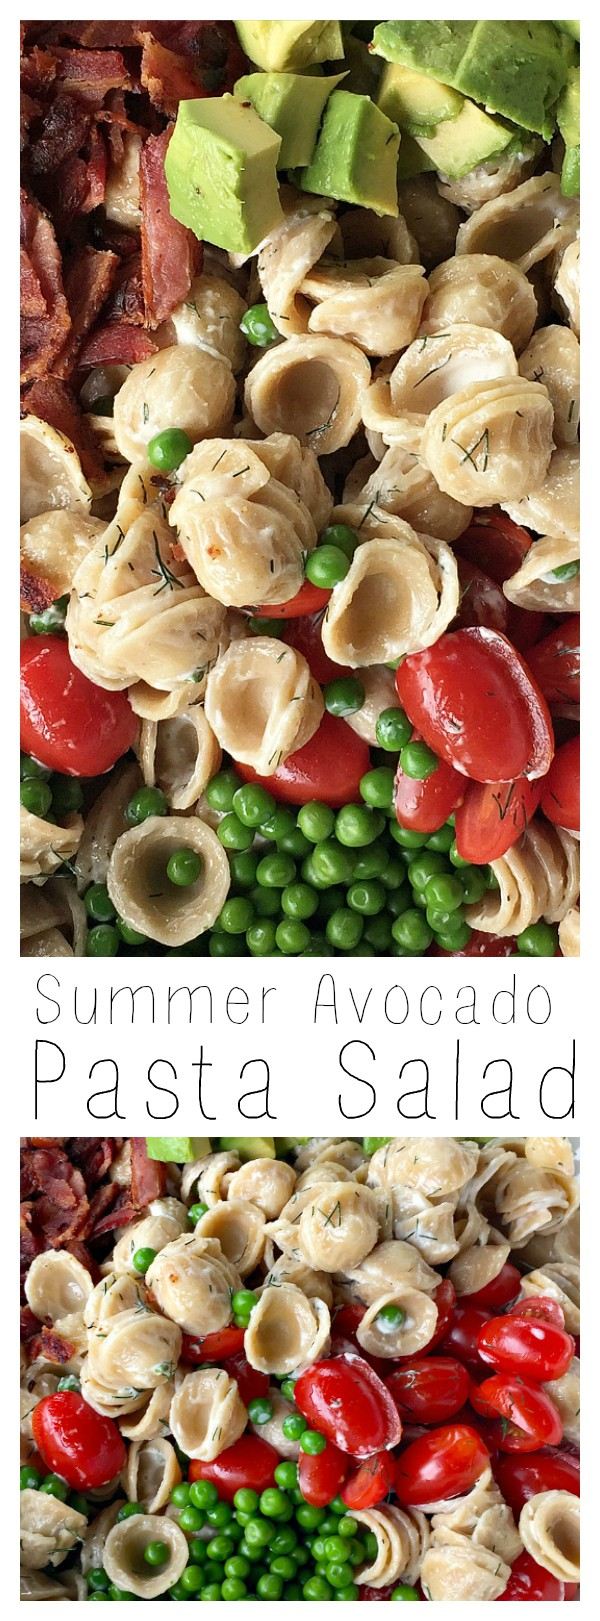 Summer Avocado Pasta Salad is perfect for any picnic, lunch, dinner, or potluck dish.